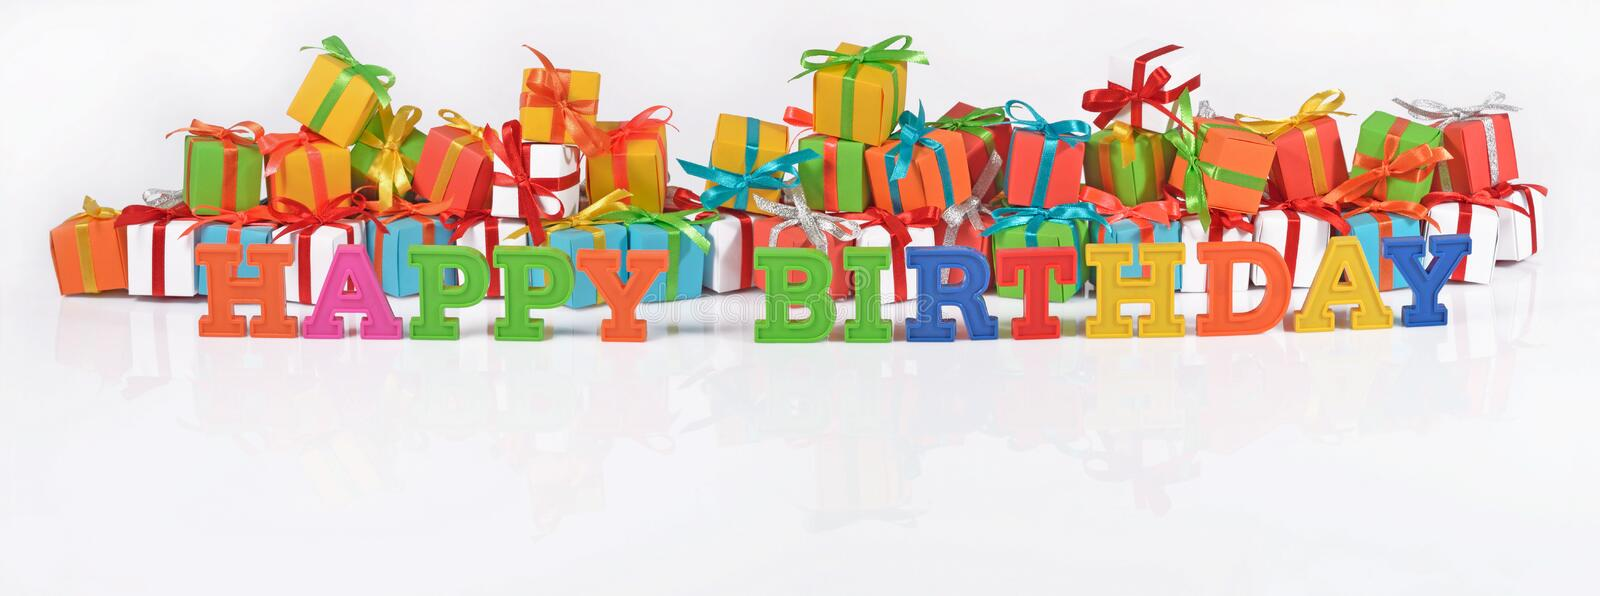 Happy birthday colorful text on the background of gifts. Happy birthday colorful text on the background of varicolored gifts royalty free stock image